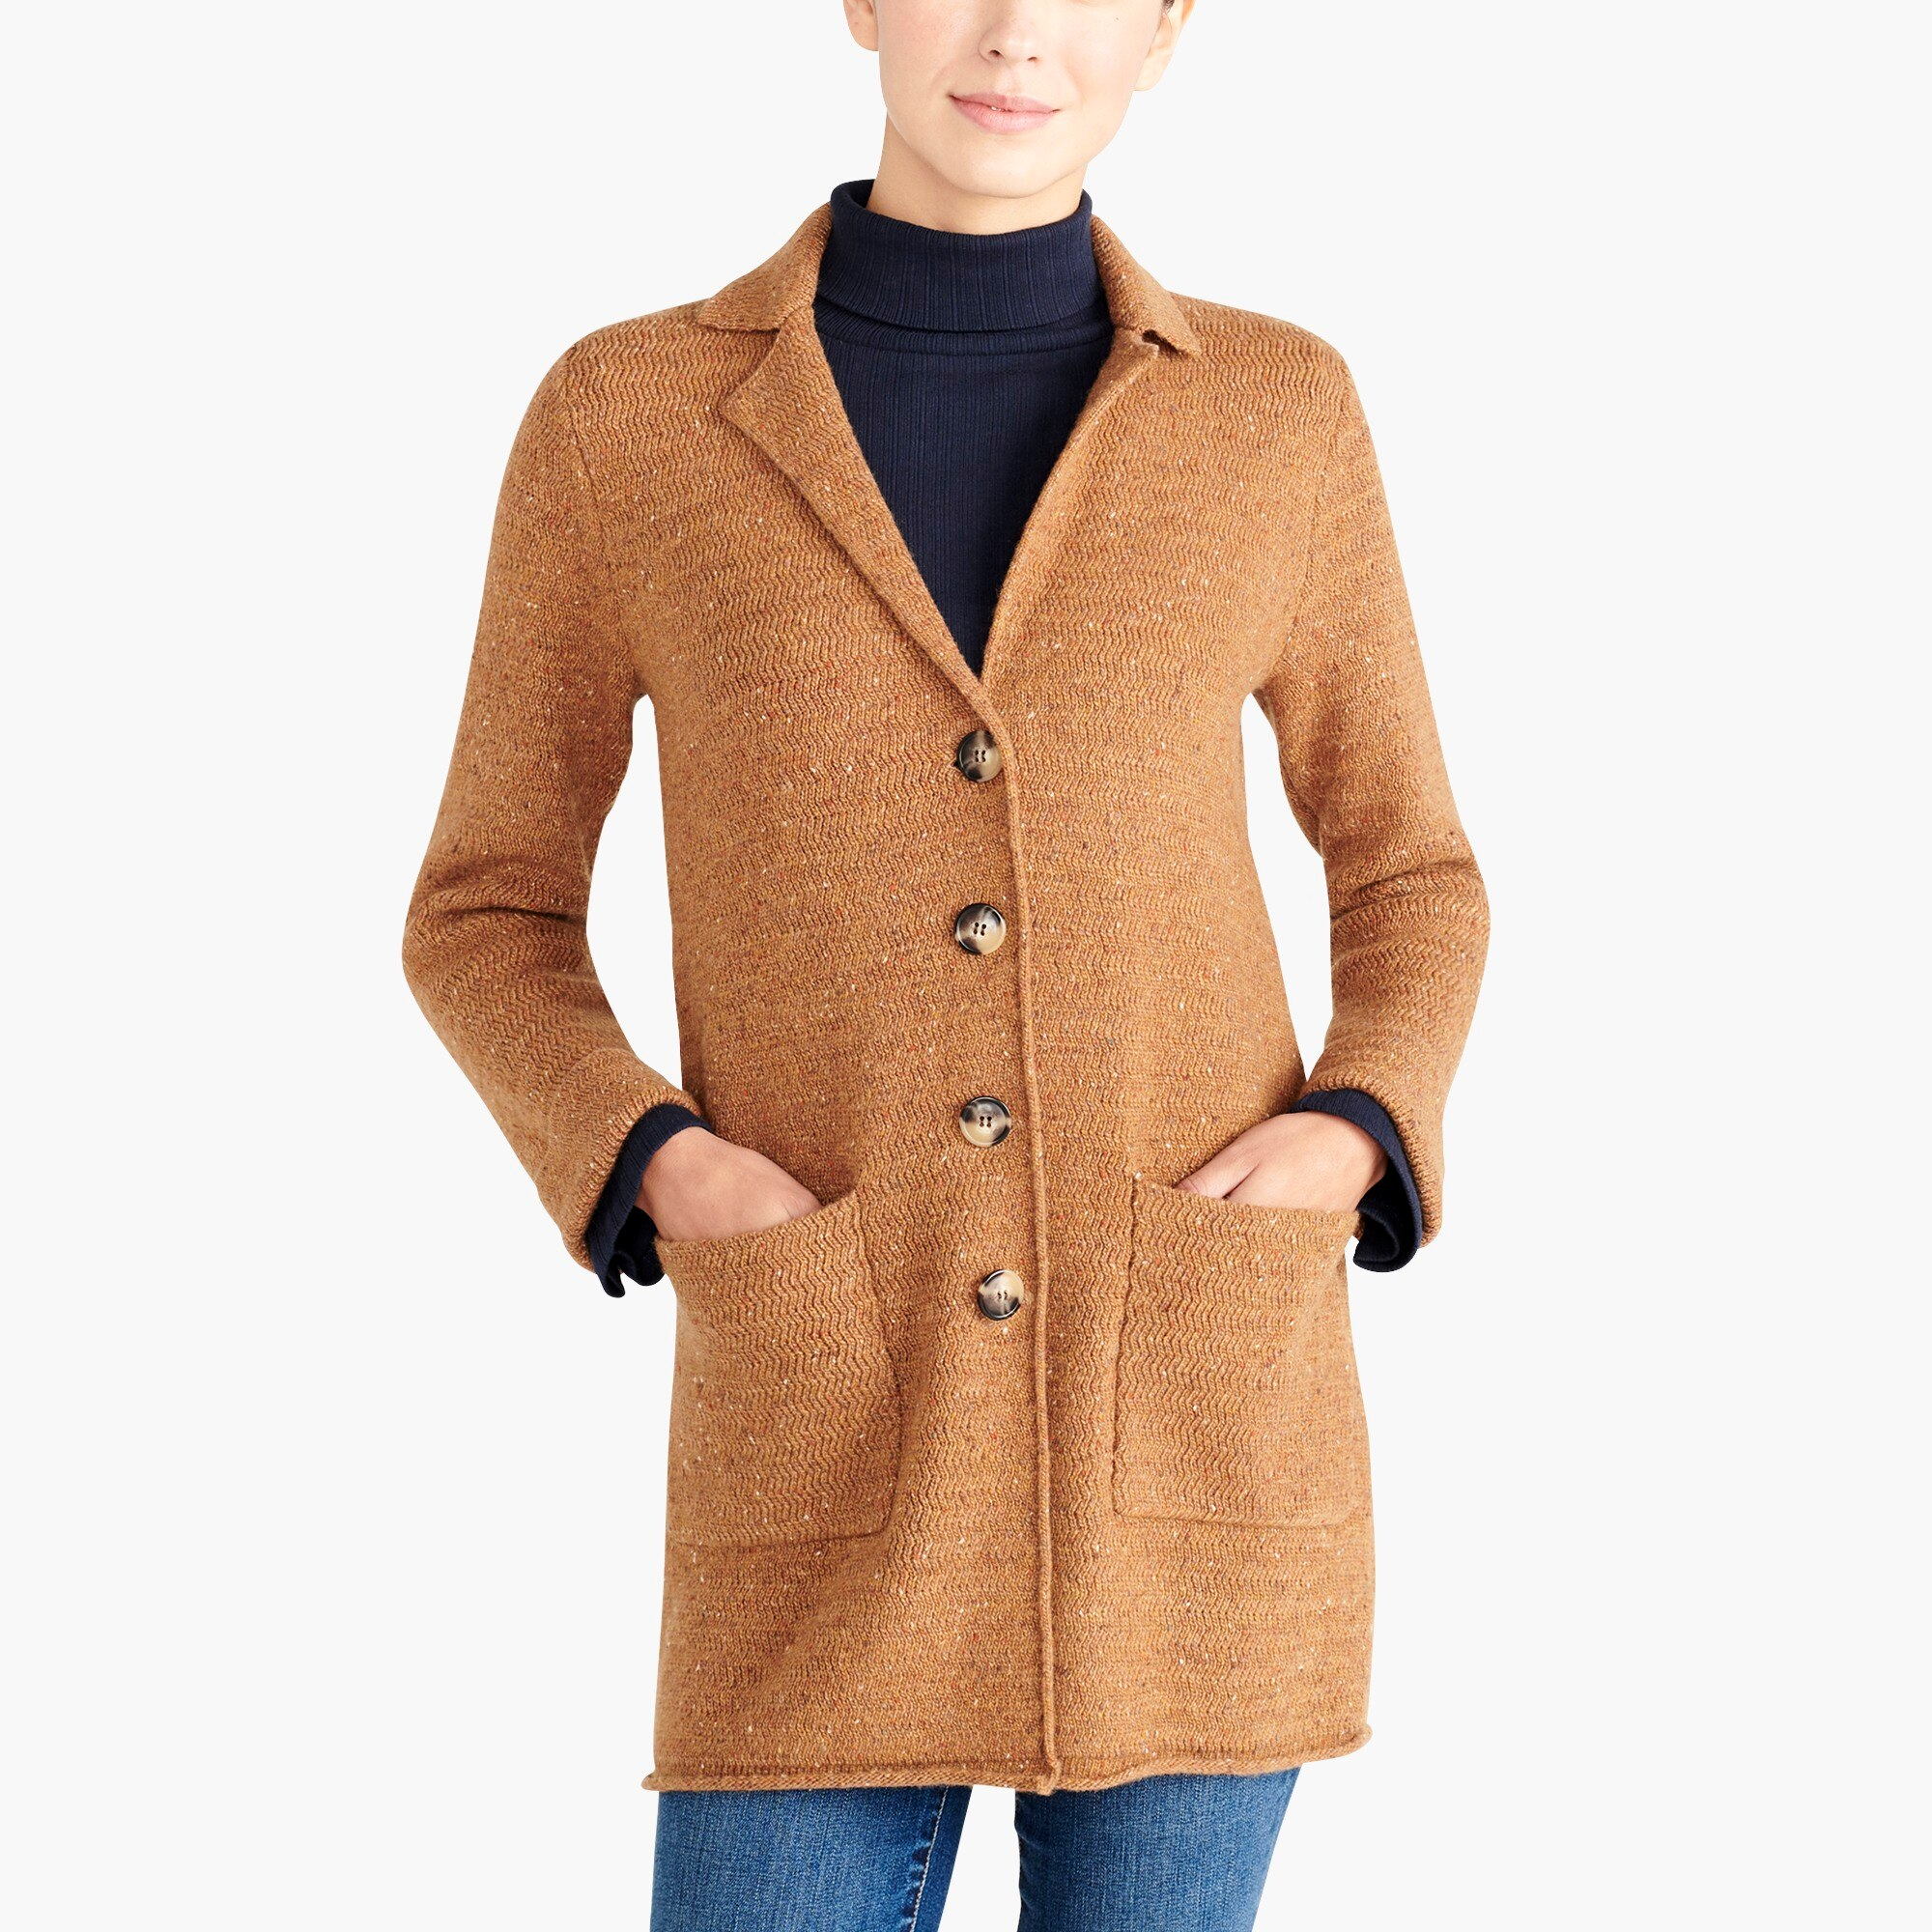 factory womens Donegal sweater-coat